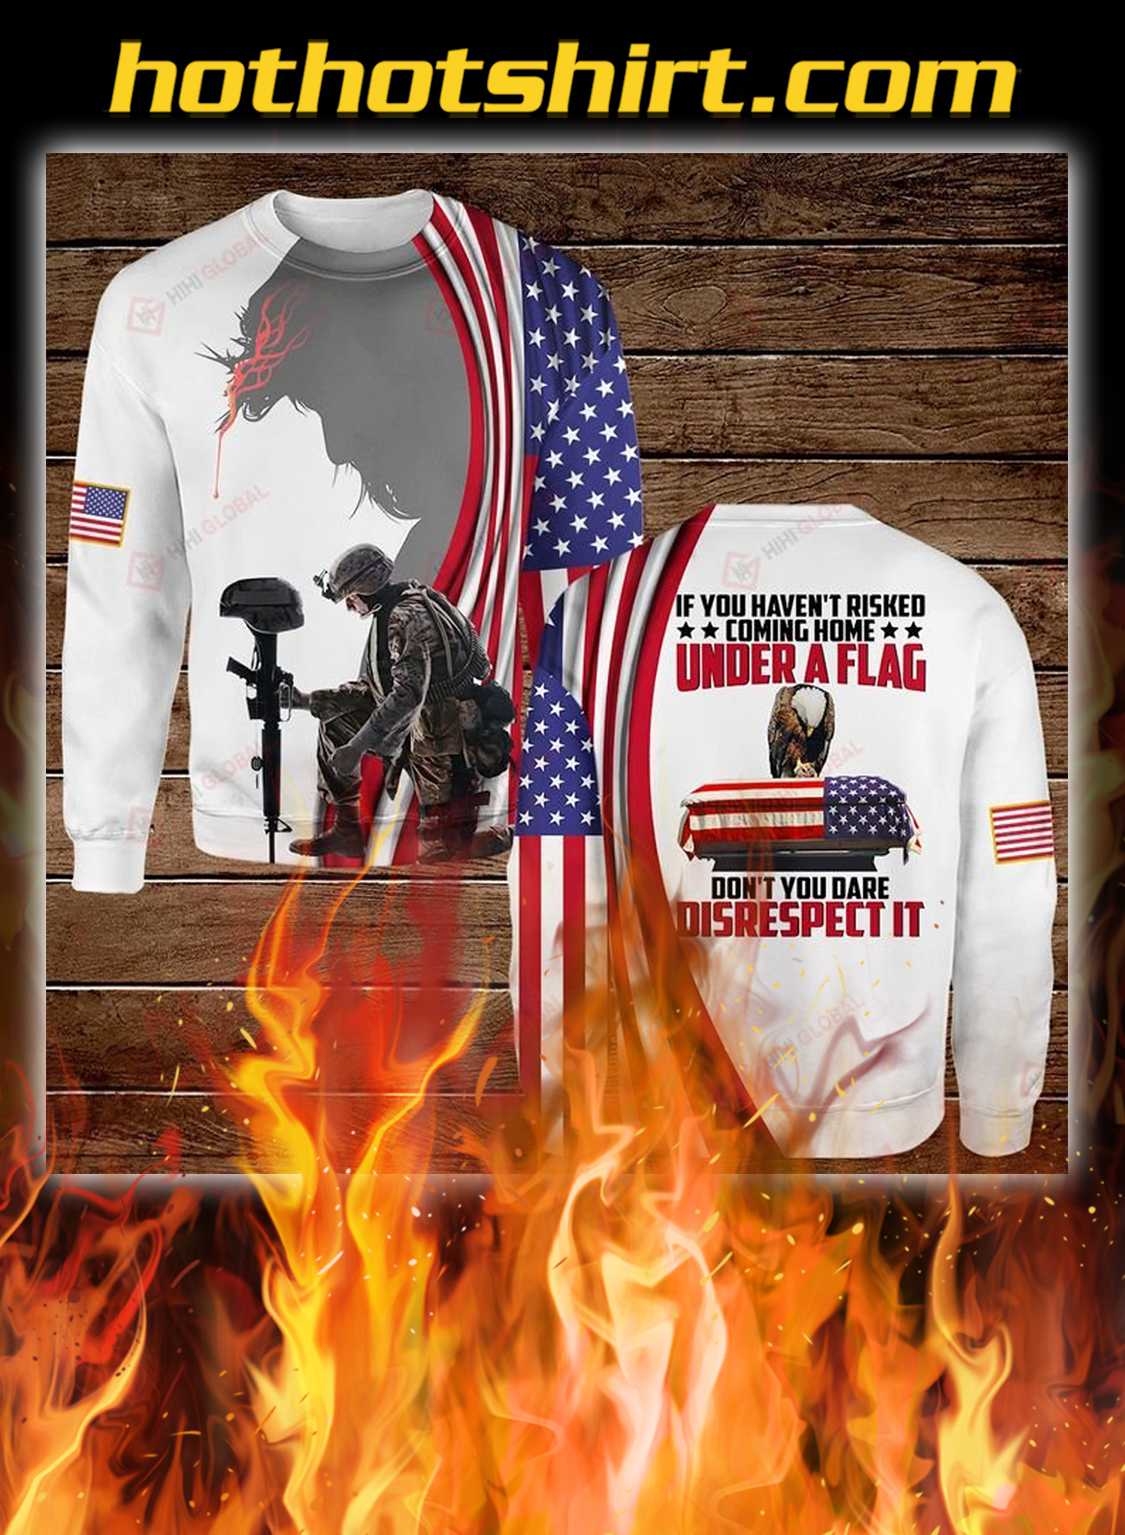 If you haven't risked coming home under a flag don't you dare disrespect 3d all over printed sweatshirt